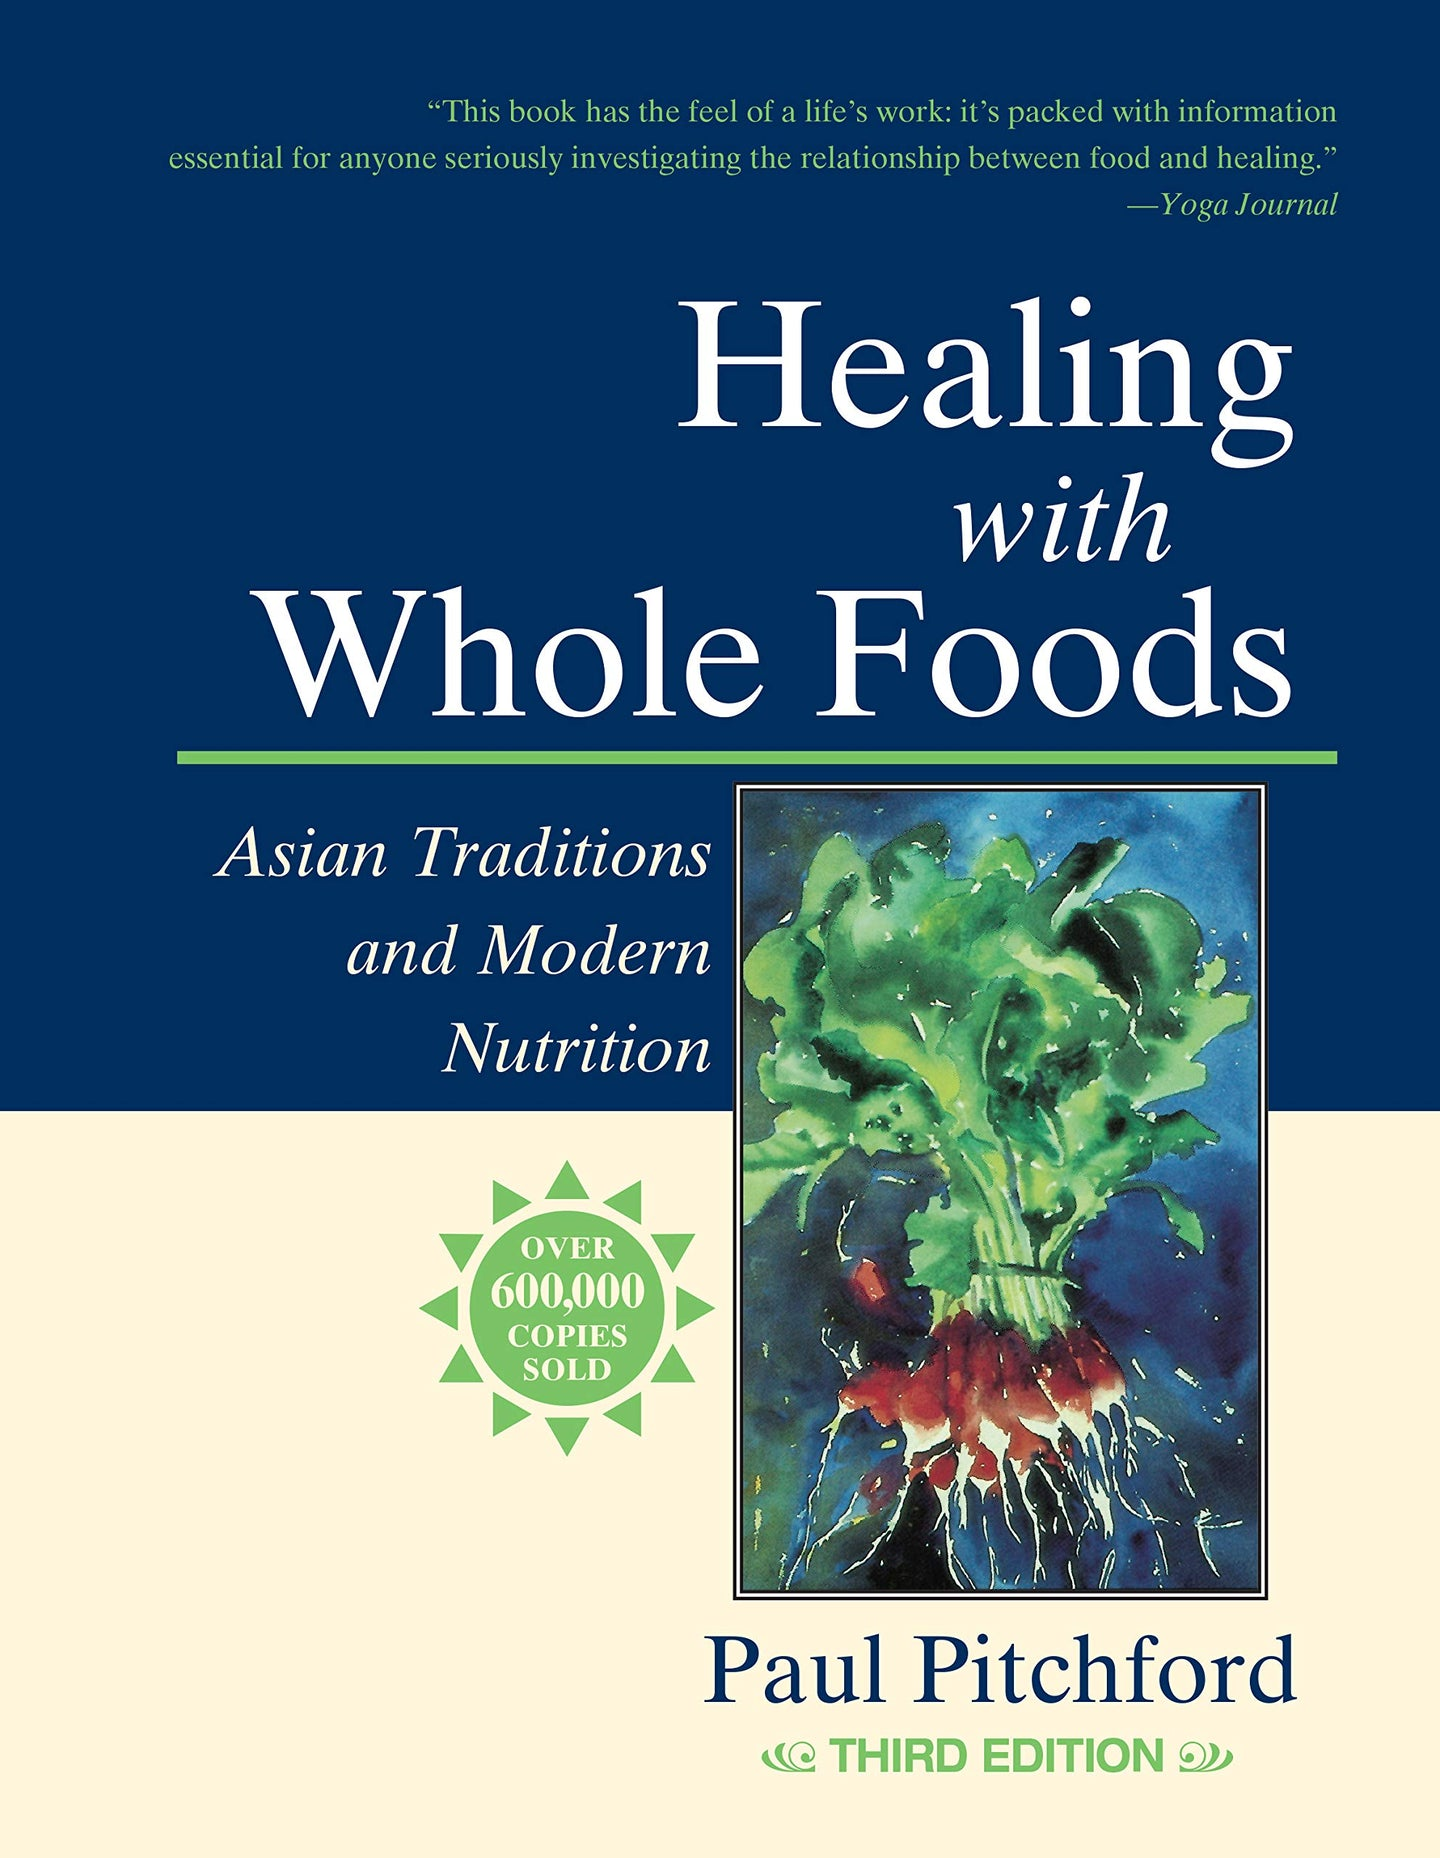 Healing with Whole Foods: Asian Traditions and Modern Nutrition - Paul Pitchford